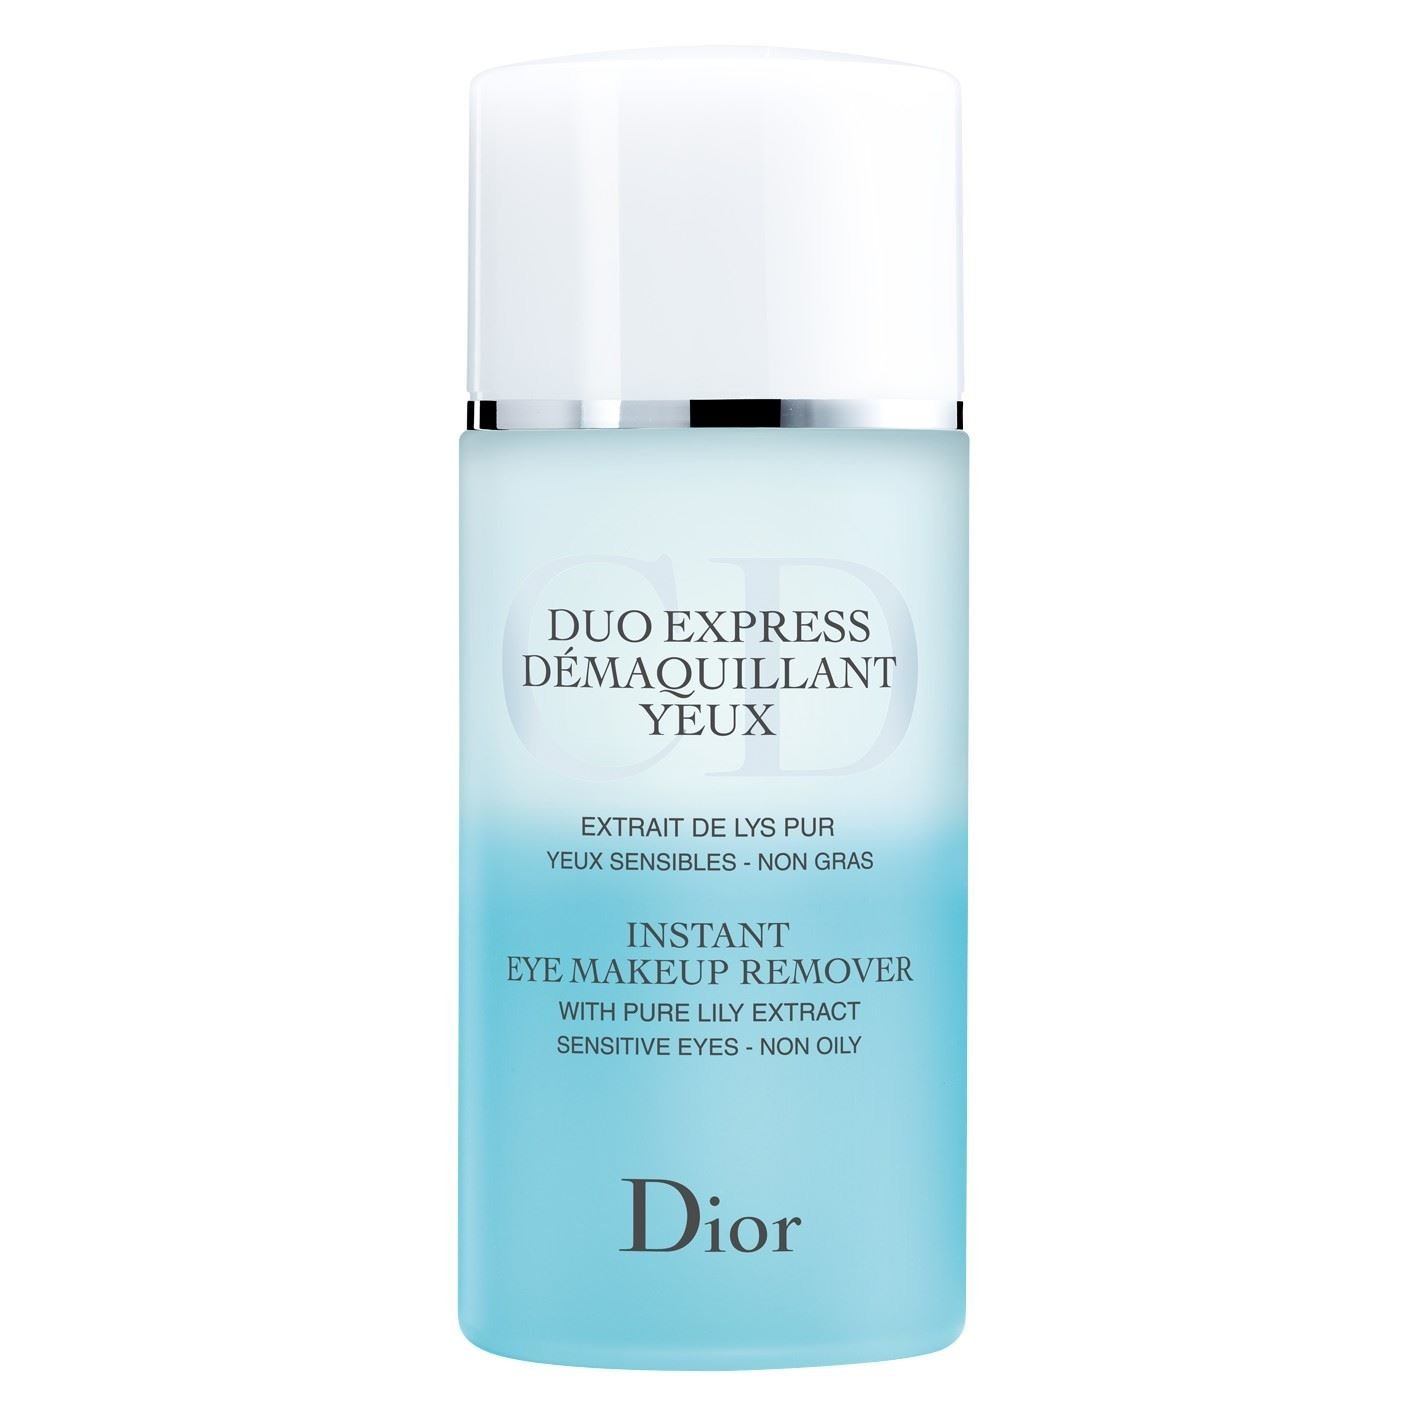 Dior Instant Eye Makeup Remover 125ml - Pack of 2